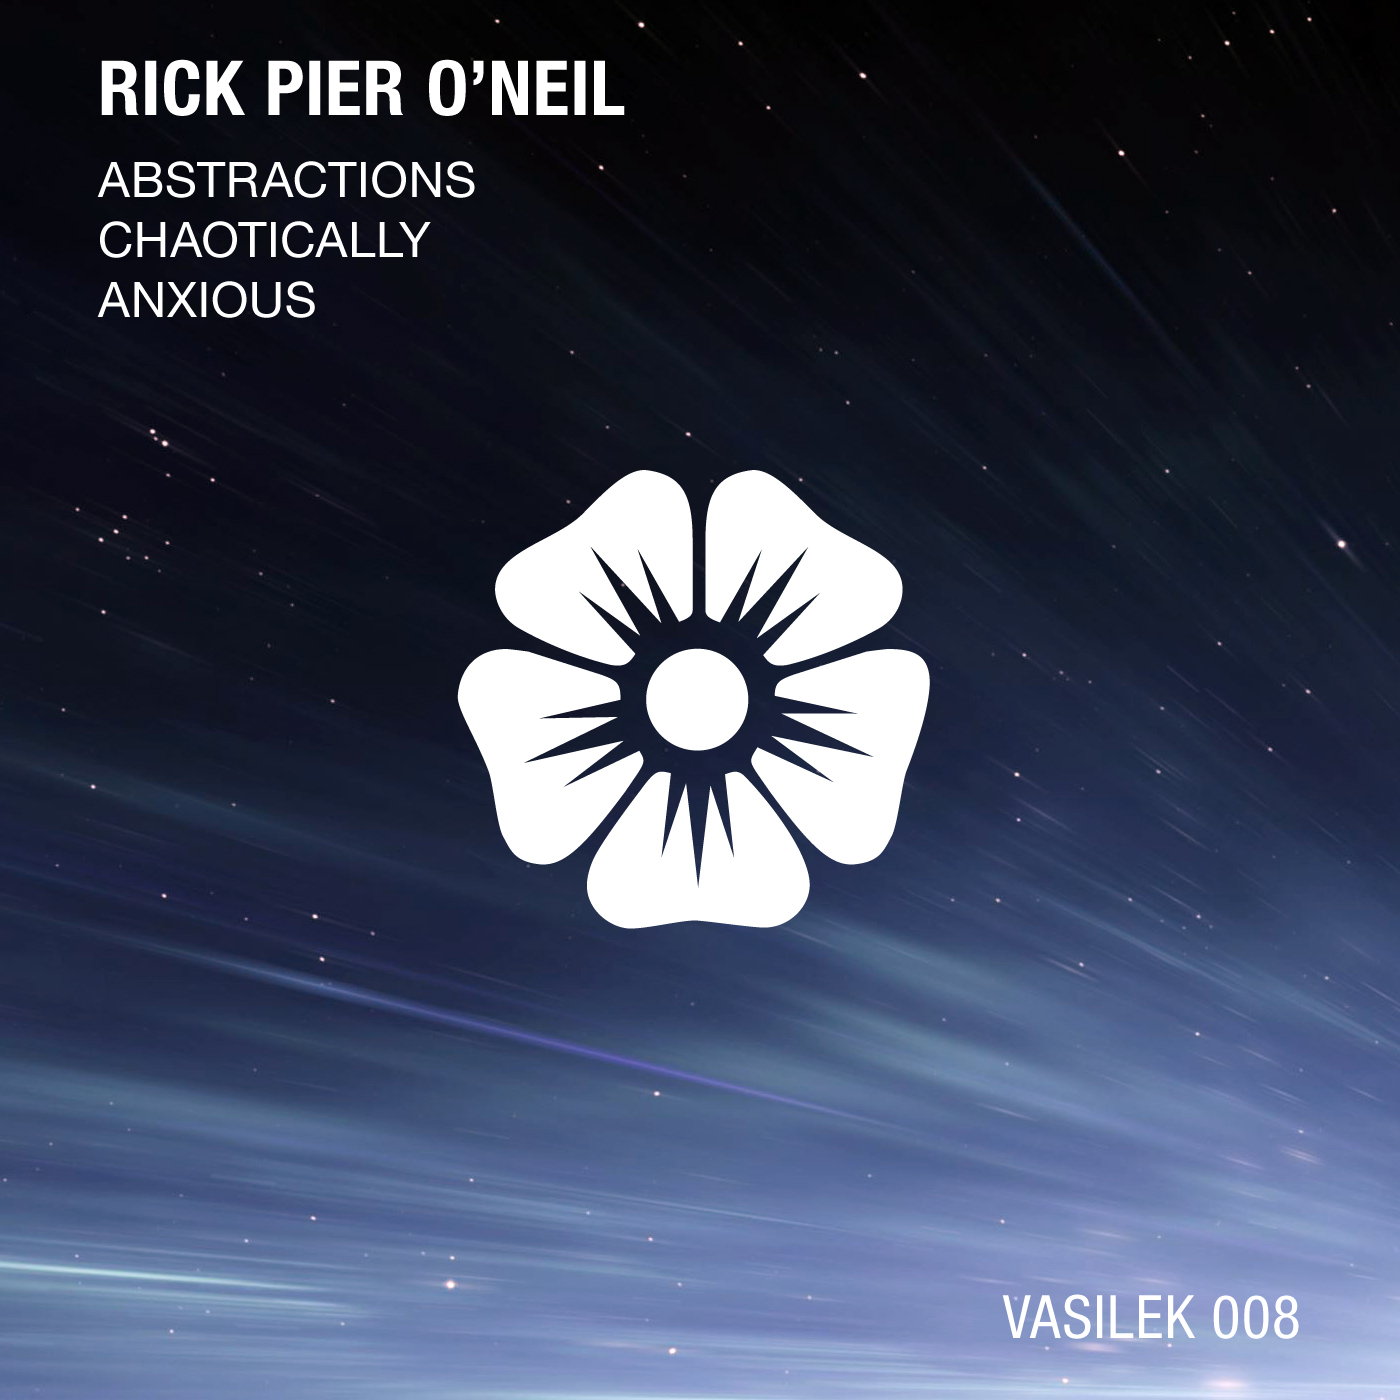 Rick Pier O'Neil - Abstractions